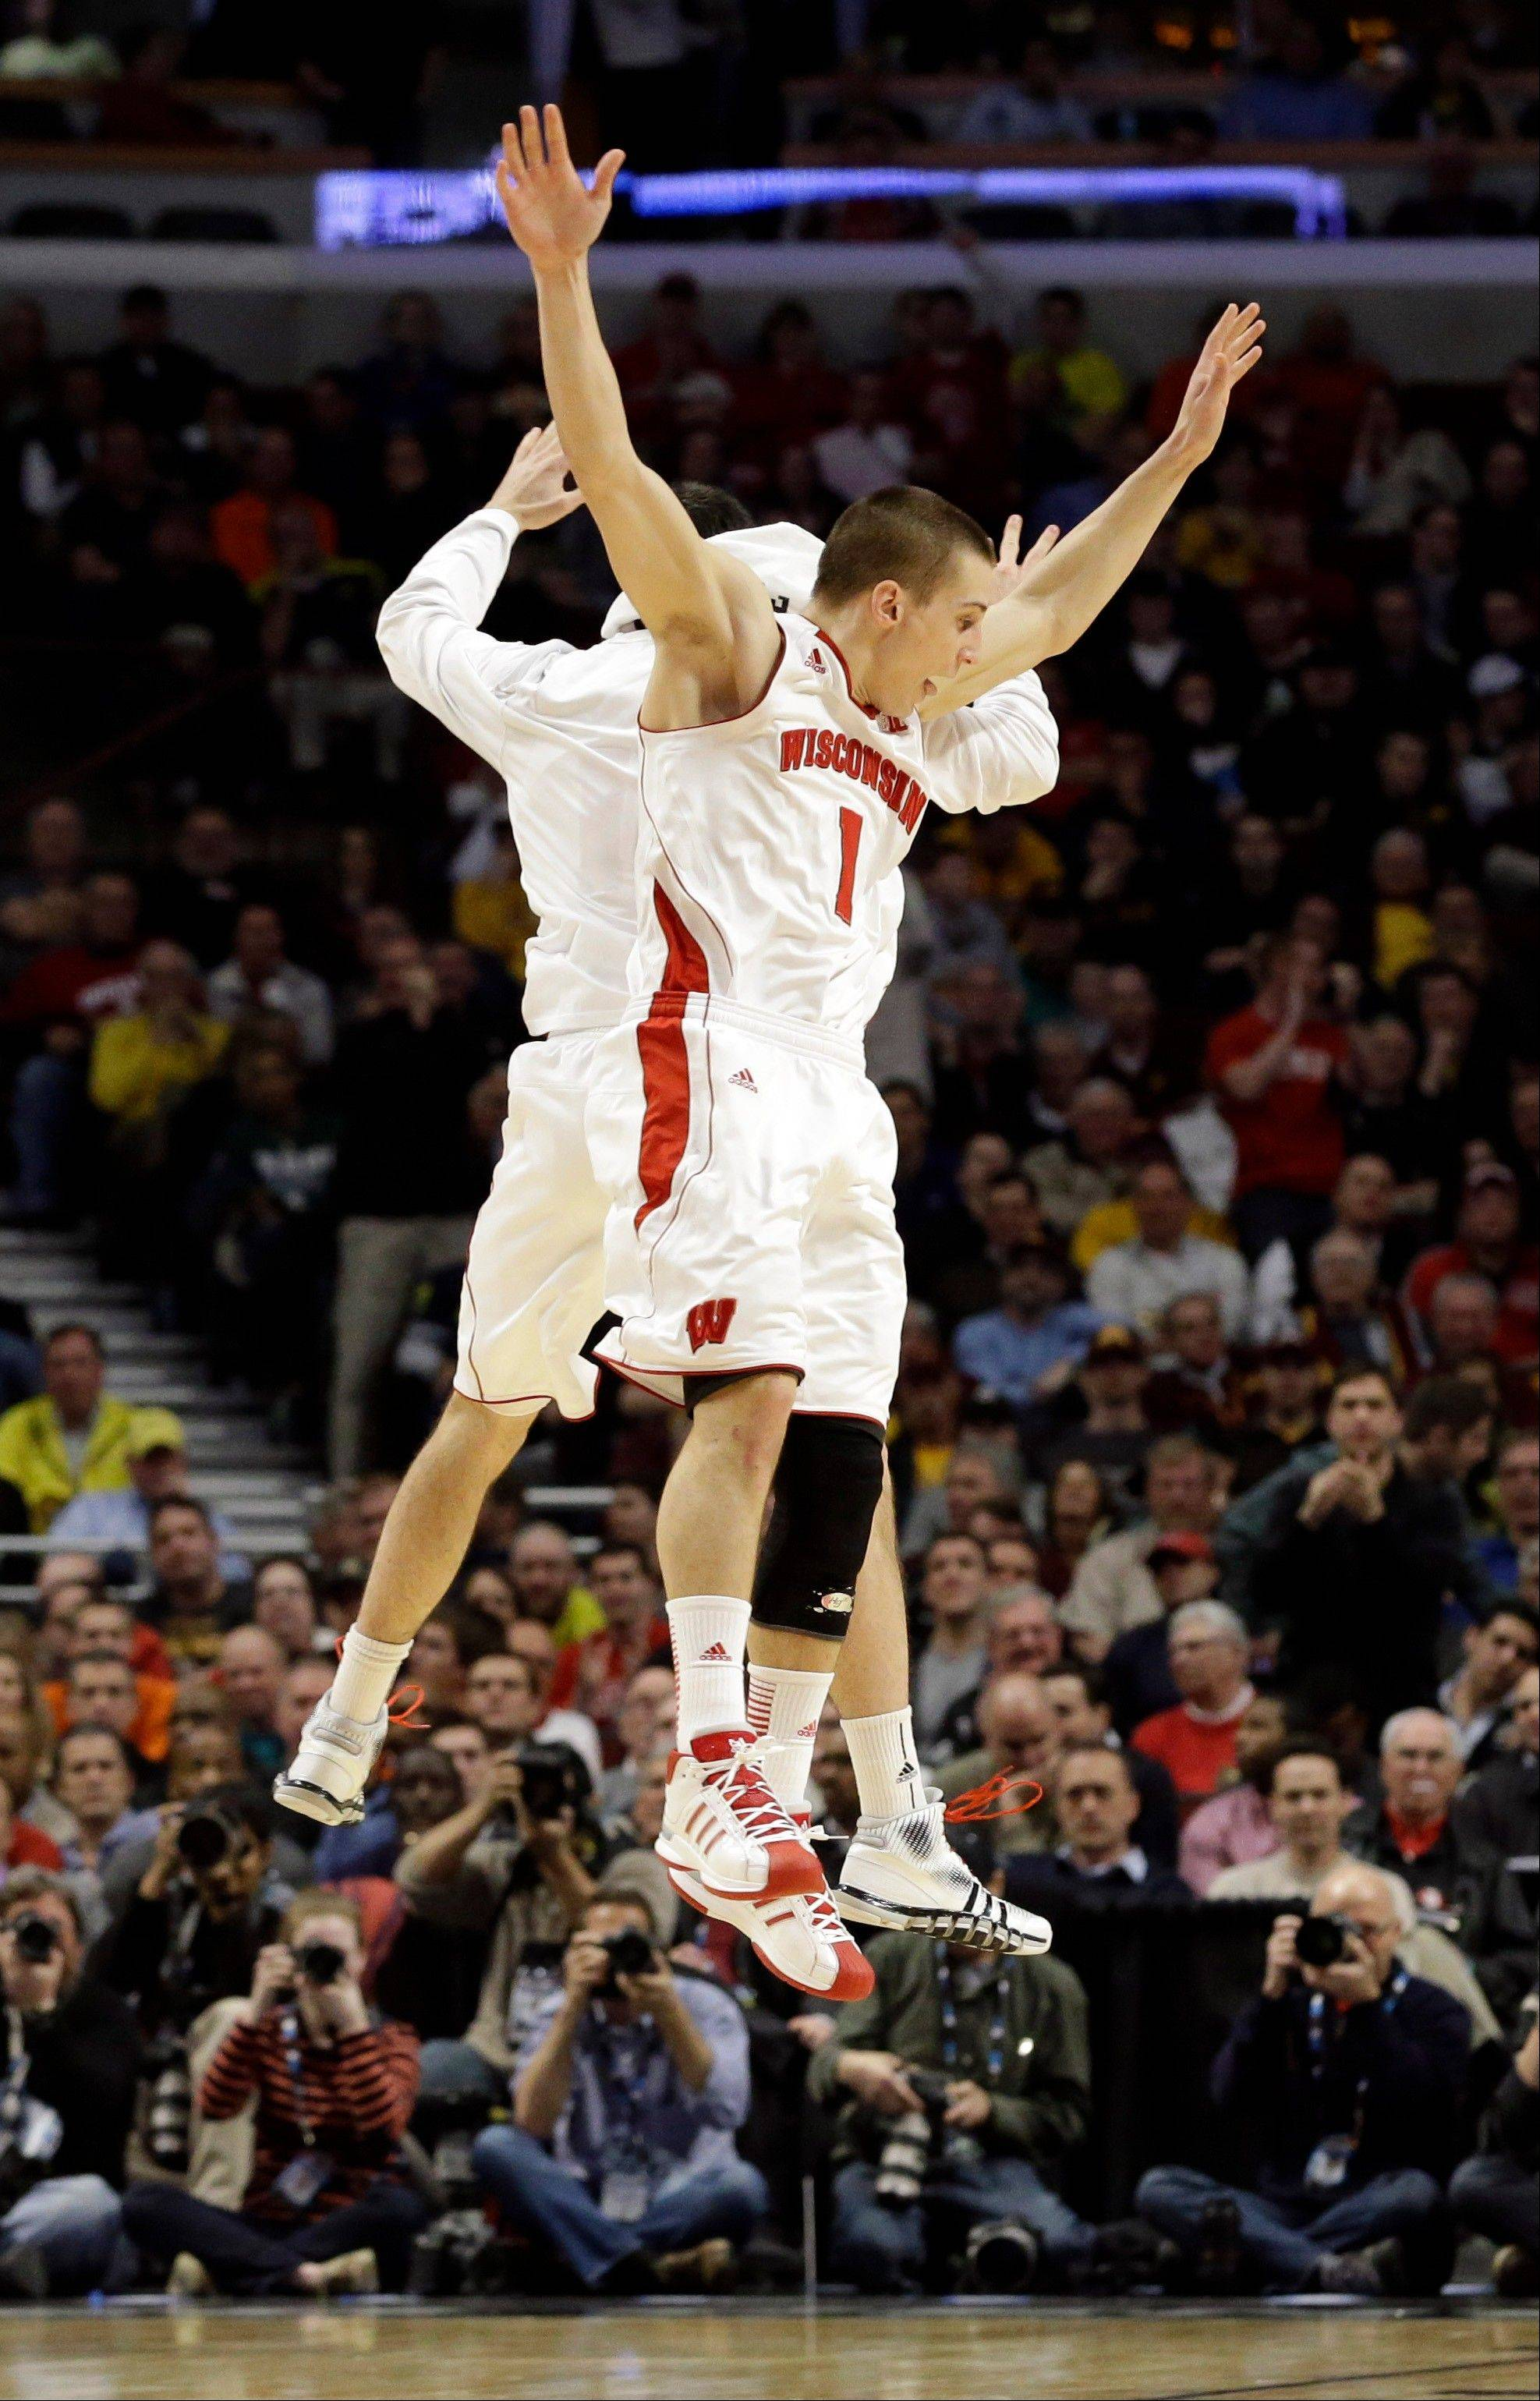 Wisconsin's Ben Brust (1) celebrates with a teammate during the second half of an NCAA college basketball game at the Big Ten tournament against MichiganFriday, March 15, 2013, in Chicago. Wisconsin won 68-59.